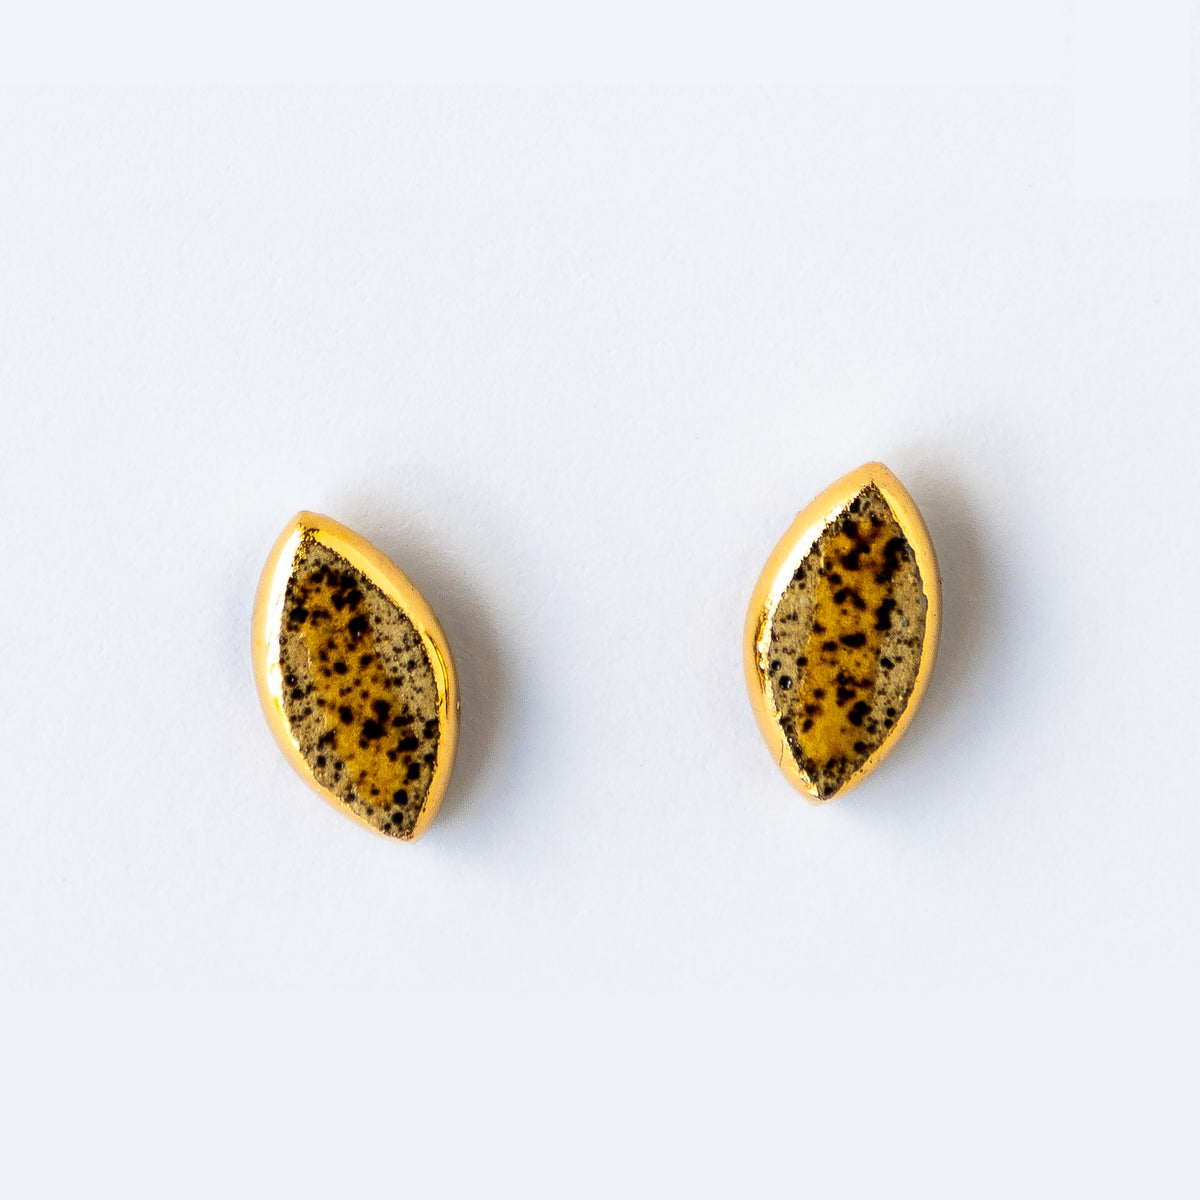 Rumi Collection - M1 - Speckled Yellow & Gold Oval Earrings